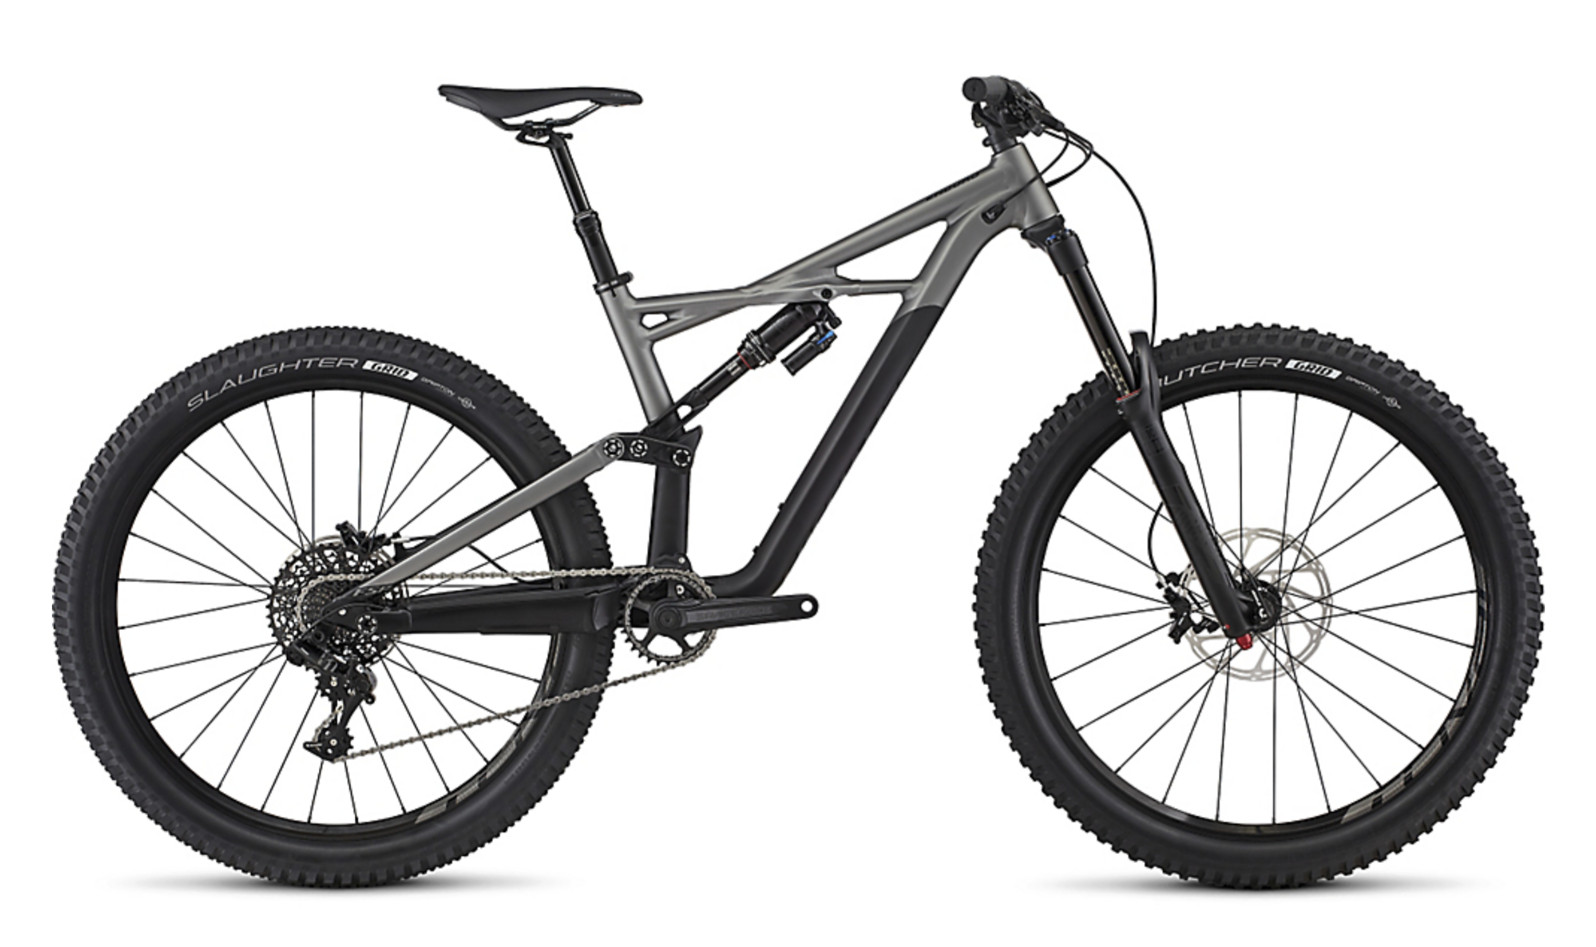 2017 Specialized Enduro Comp 650b  2017 Specialized Enduro Comp 650B Bike (Satin Black/Charcoal)